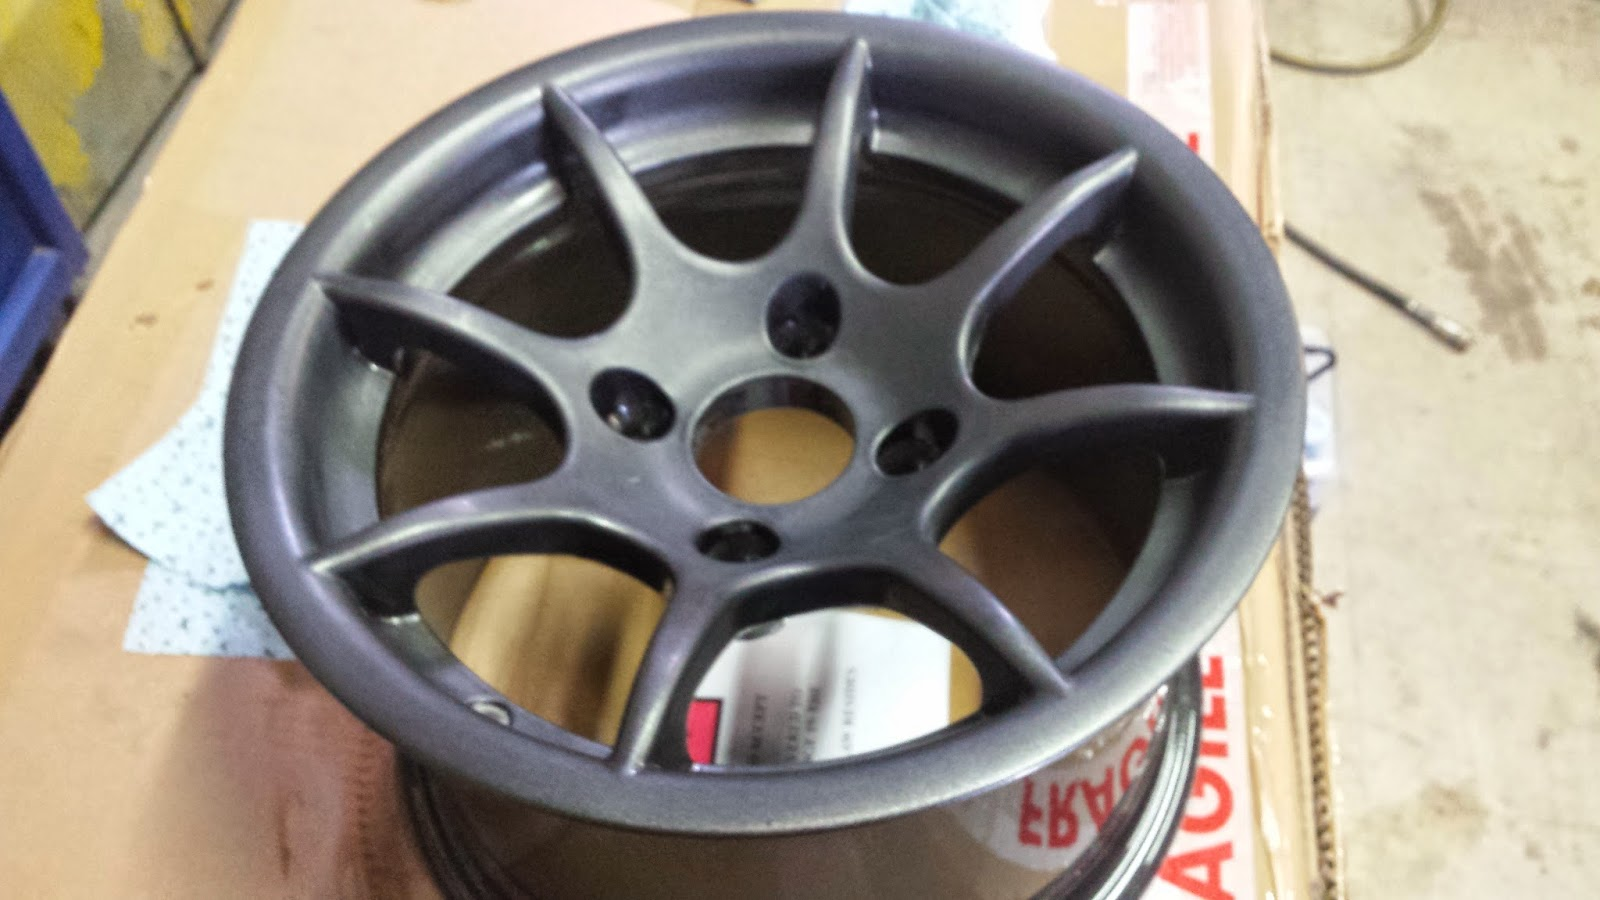 8 spoke wheel after flattening with 1500 grit superfine wet and dry